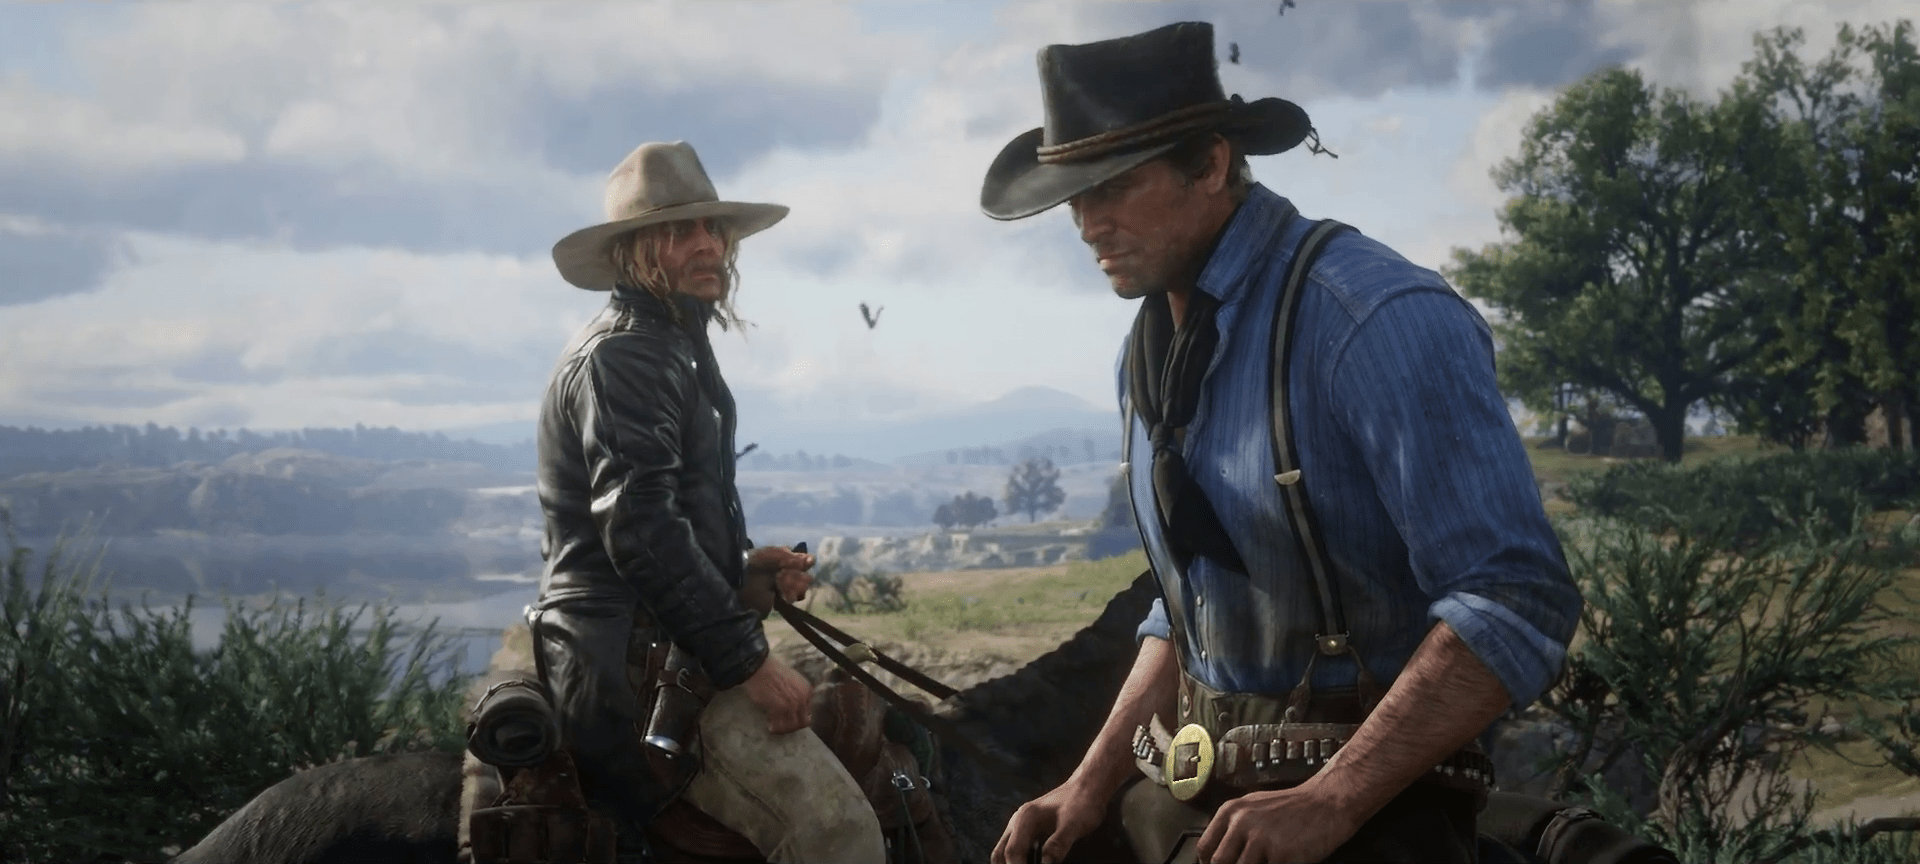 Pin By Marshall40041 On Red Dead Redemption 2 Red Dead Redemption Red Dead Online Red Dead Redemption Ii